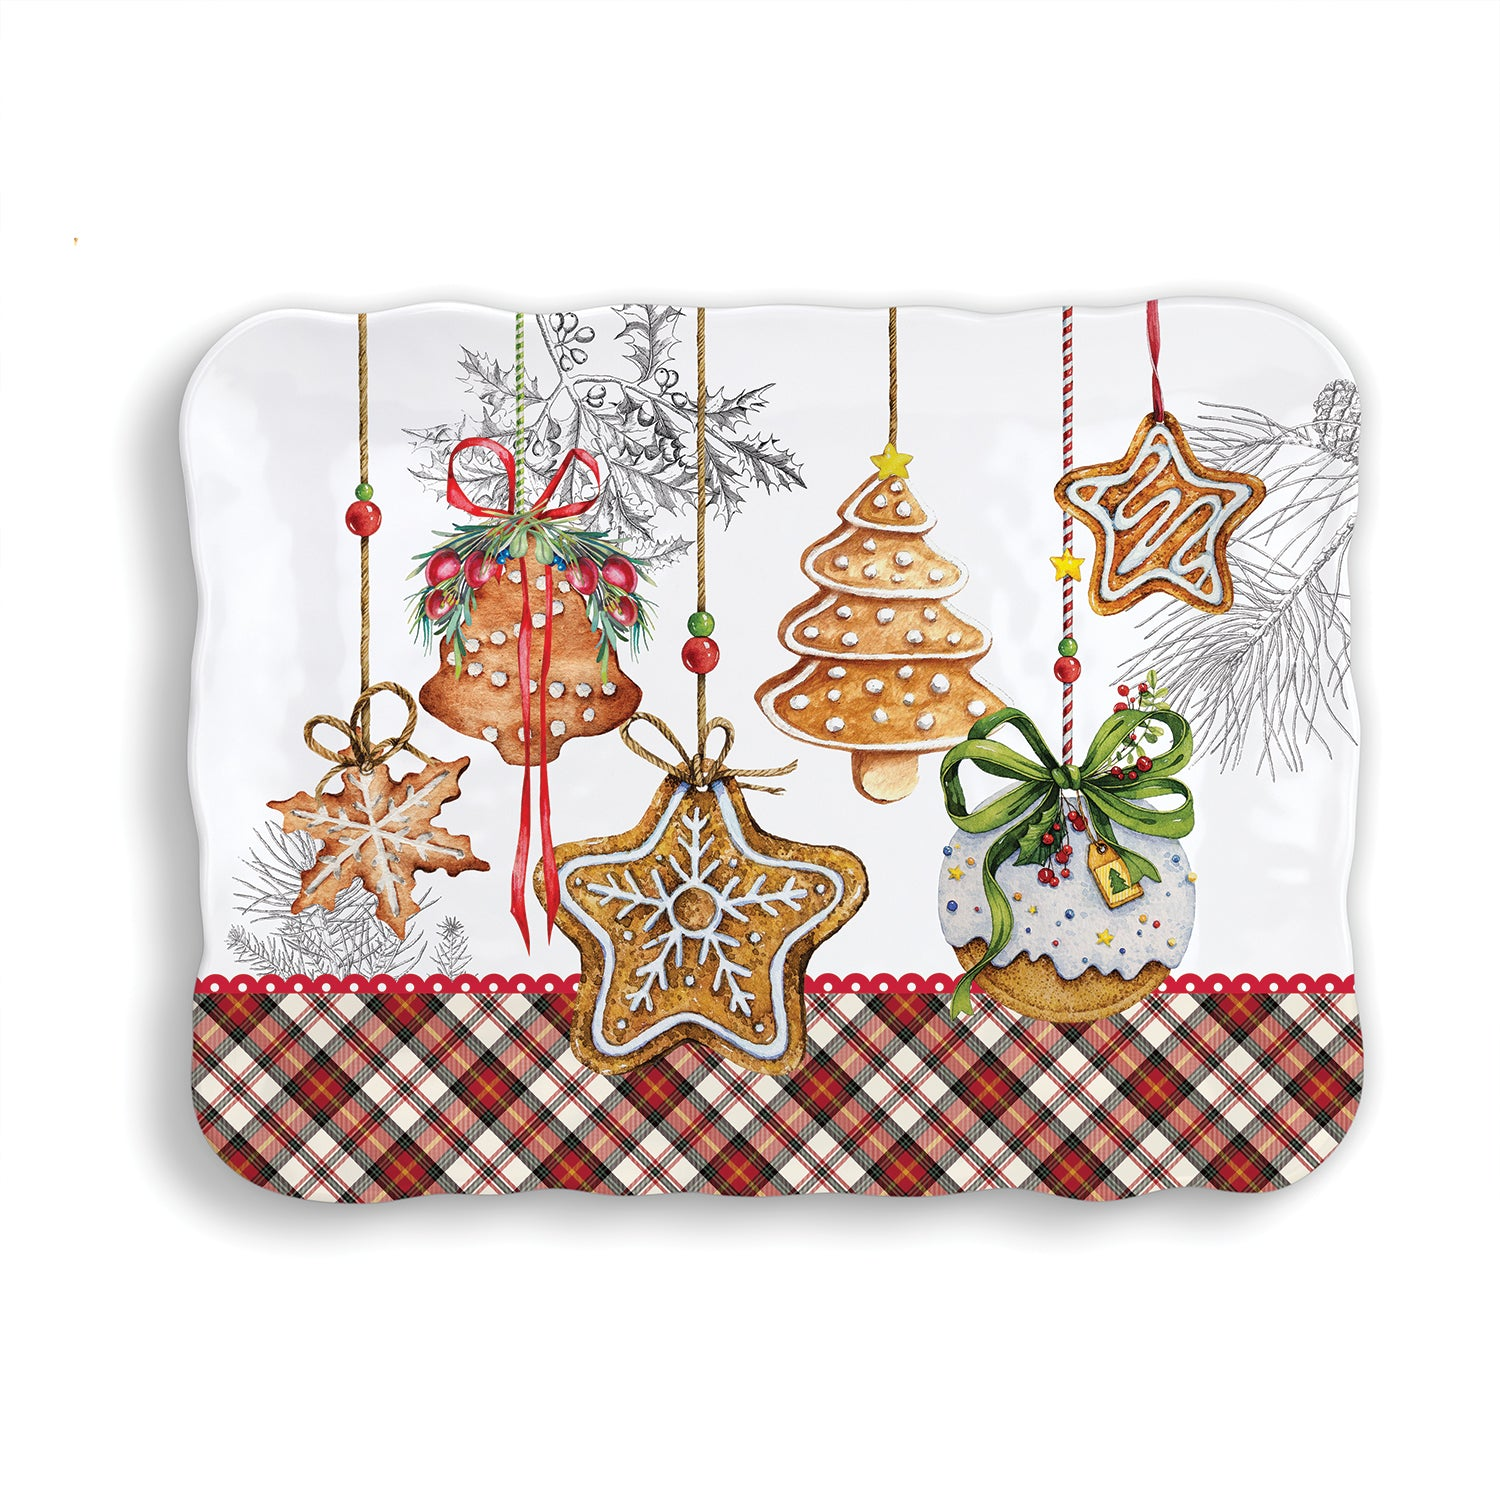 Holiday Treats Melamine Cookie Tray